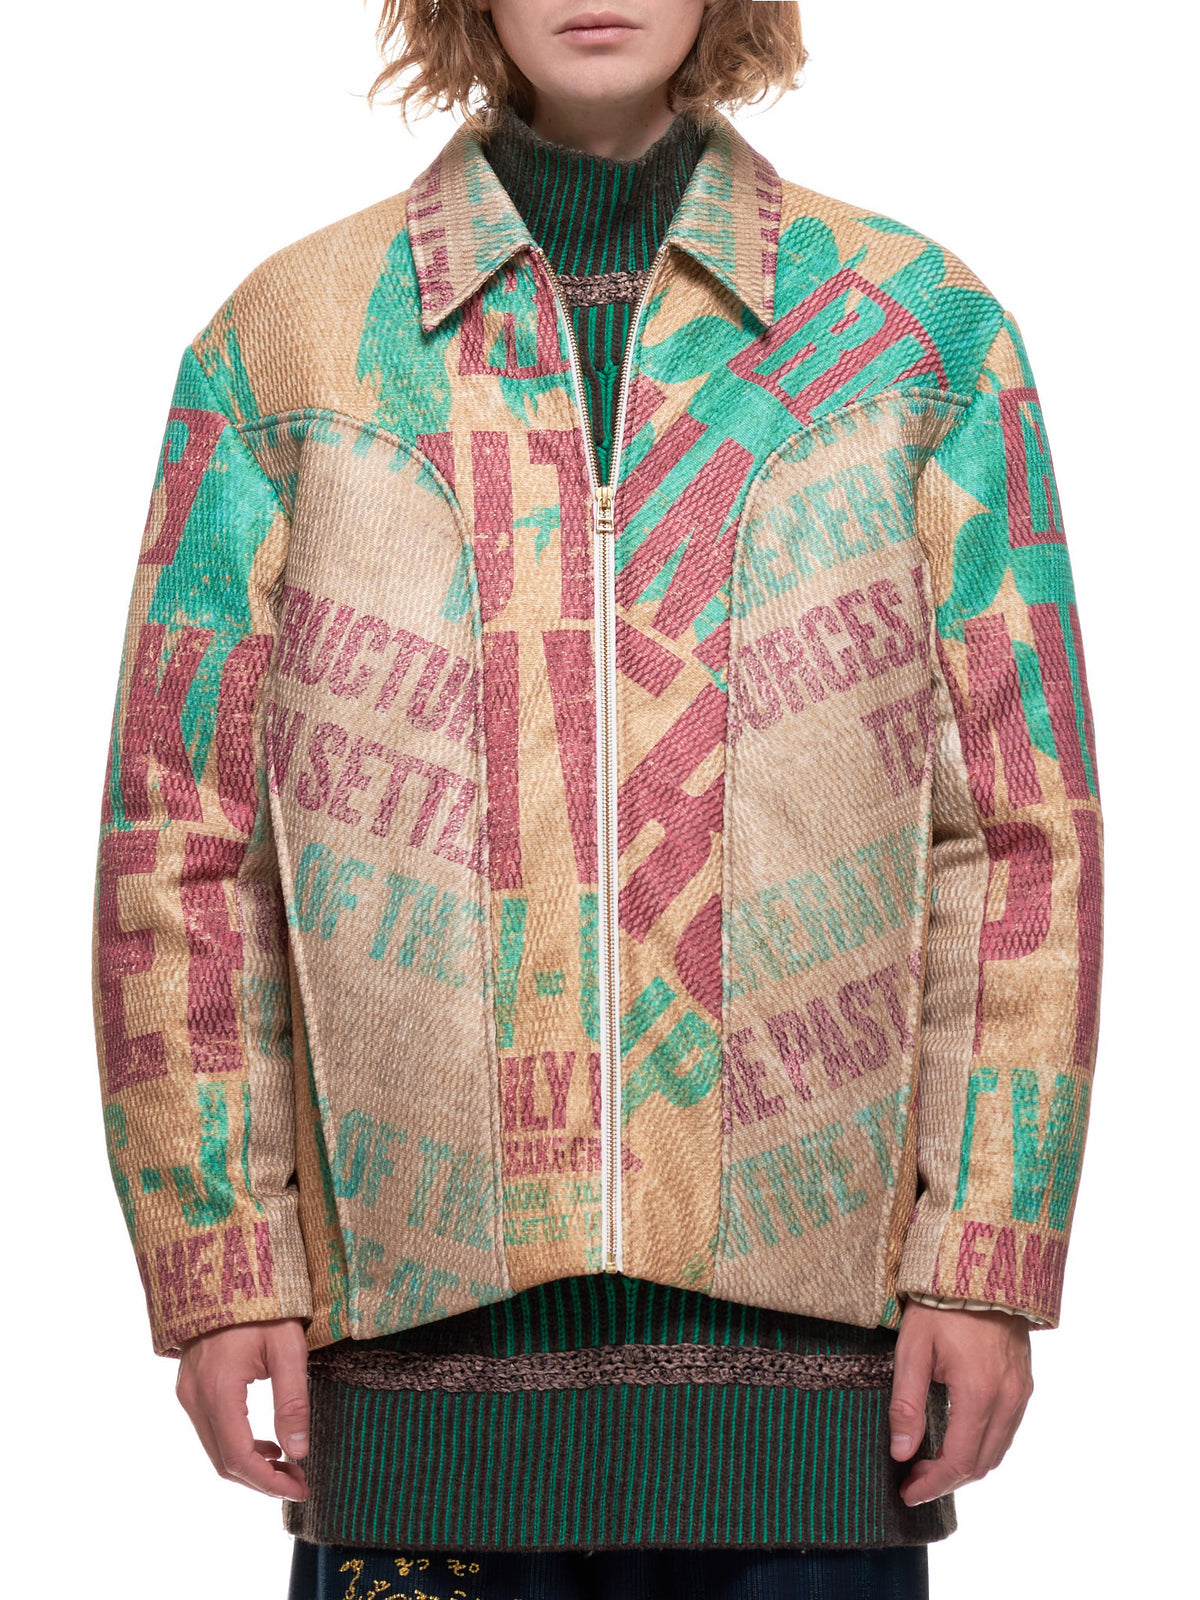 Linda Panelled Blouson Jacket (JK-07-LINDA-MULTI-GRAPHIC-JADE)